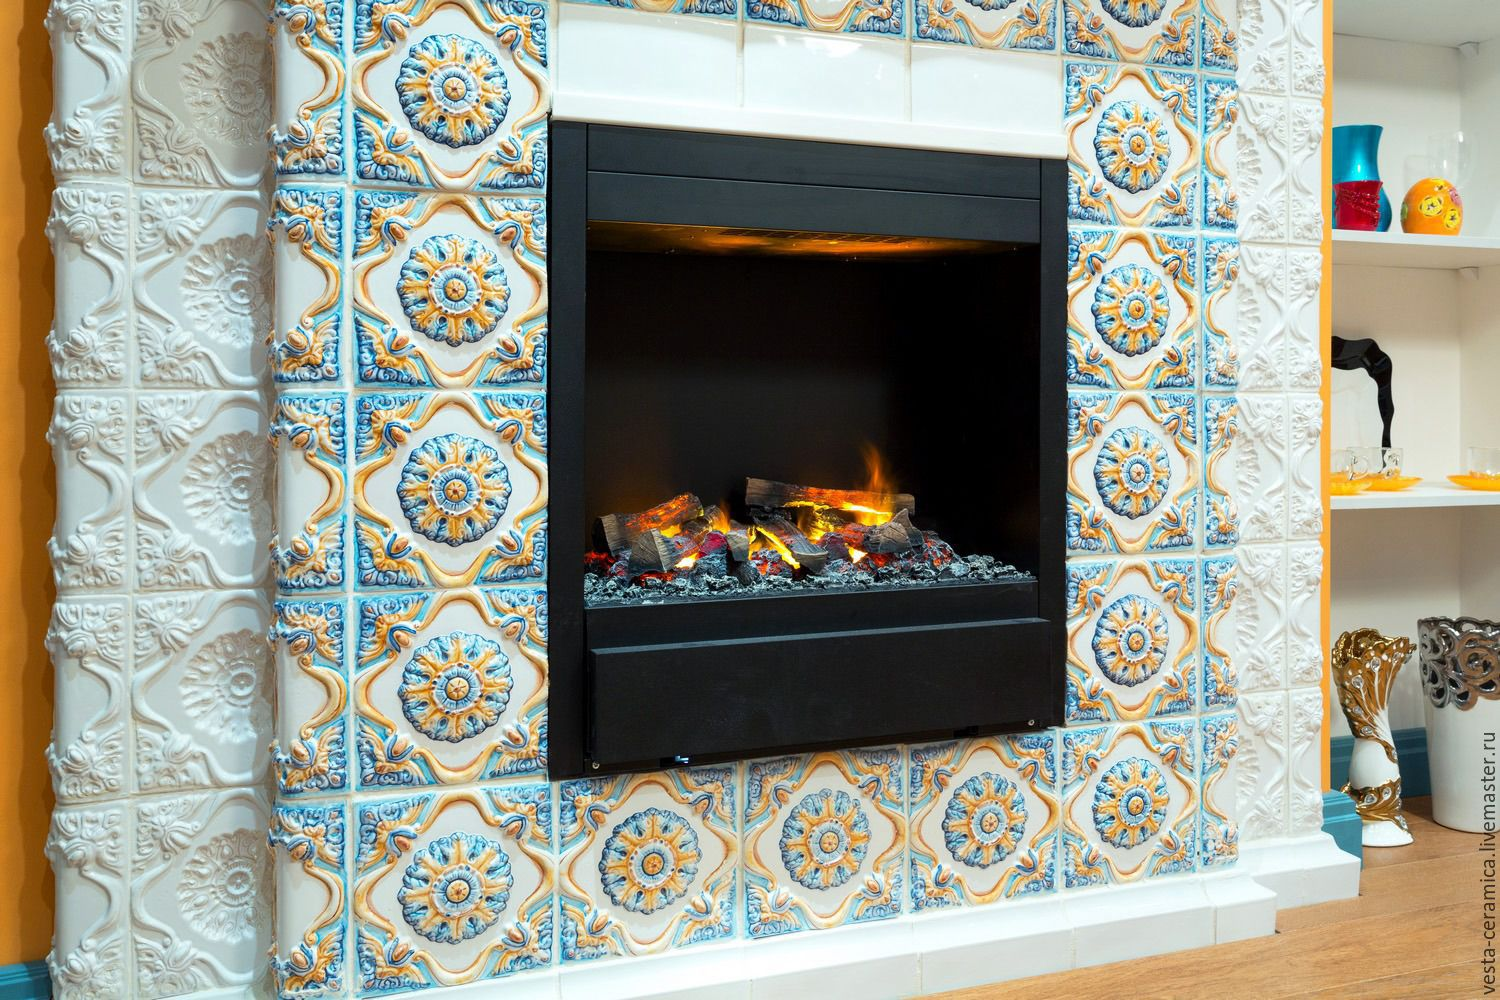 3e19c1caad c392fcc0be6jv stoves fireplaces tiled fireplace chinoiserie